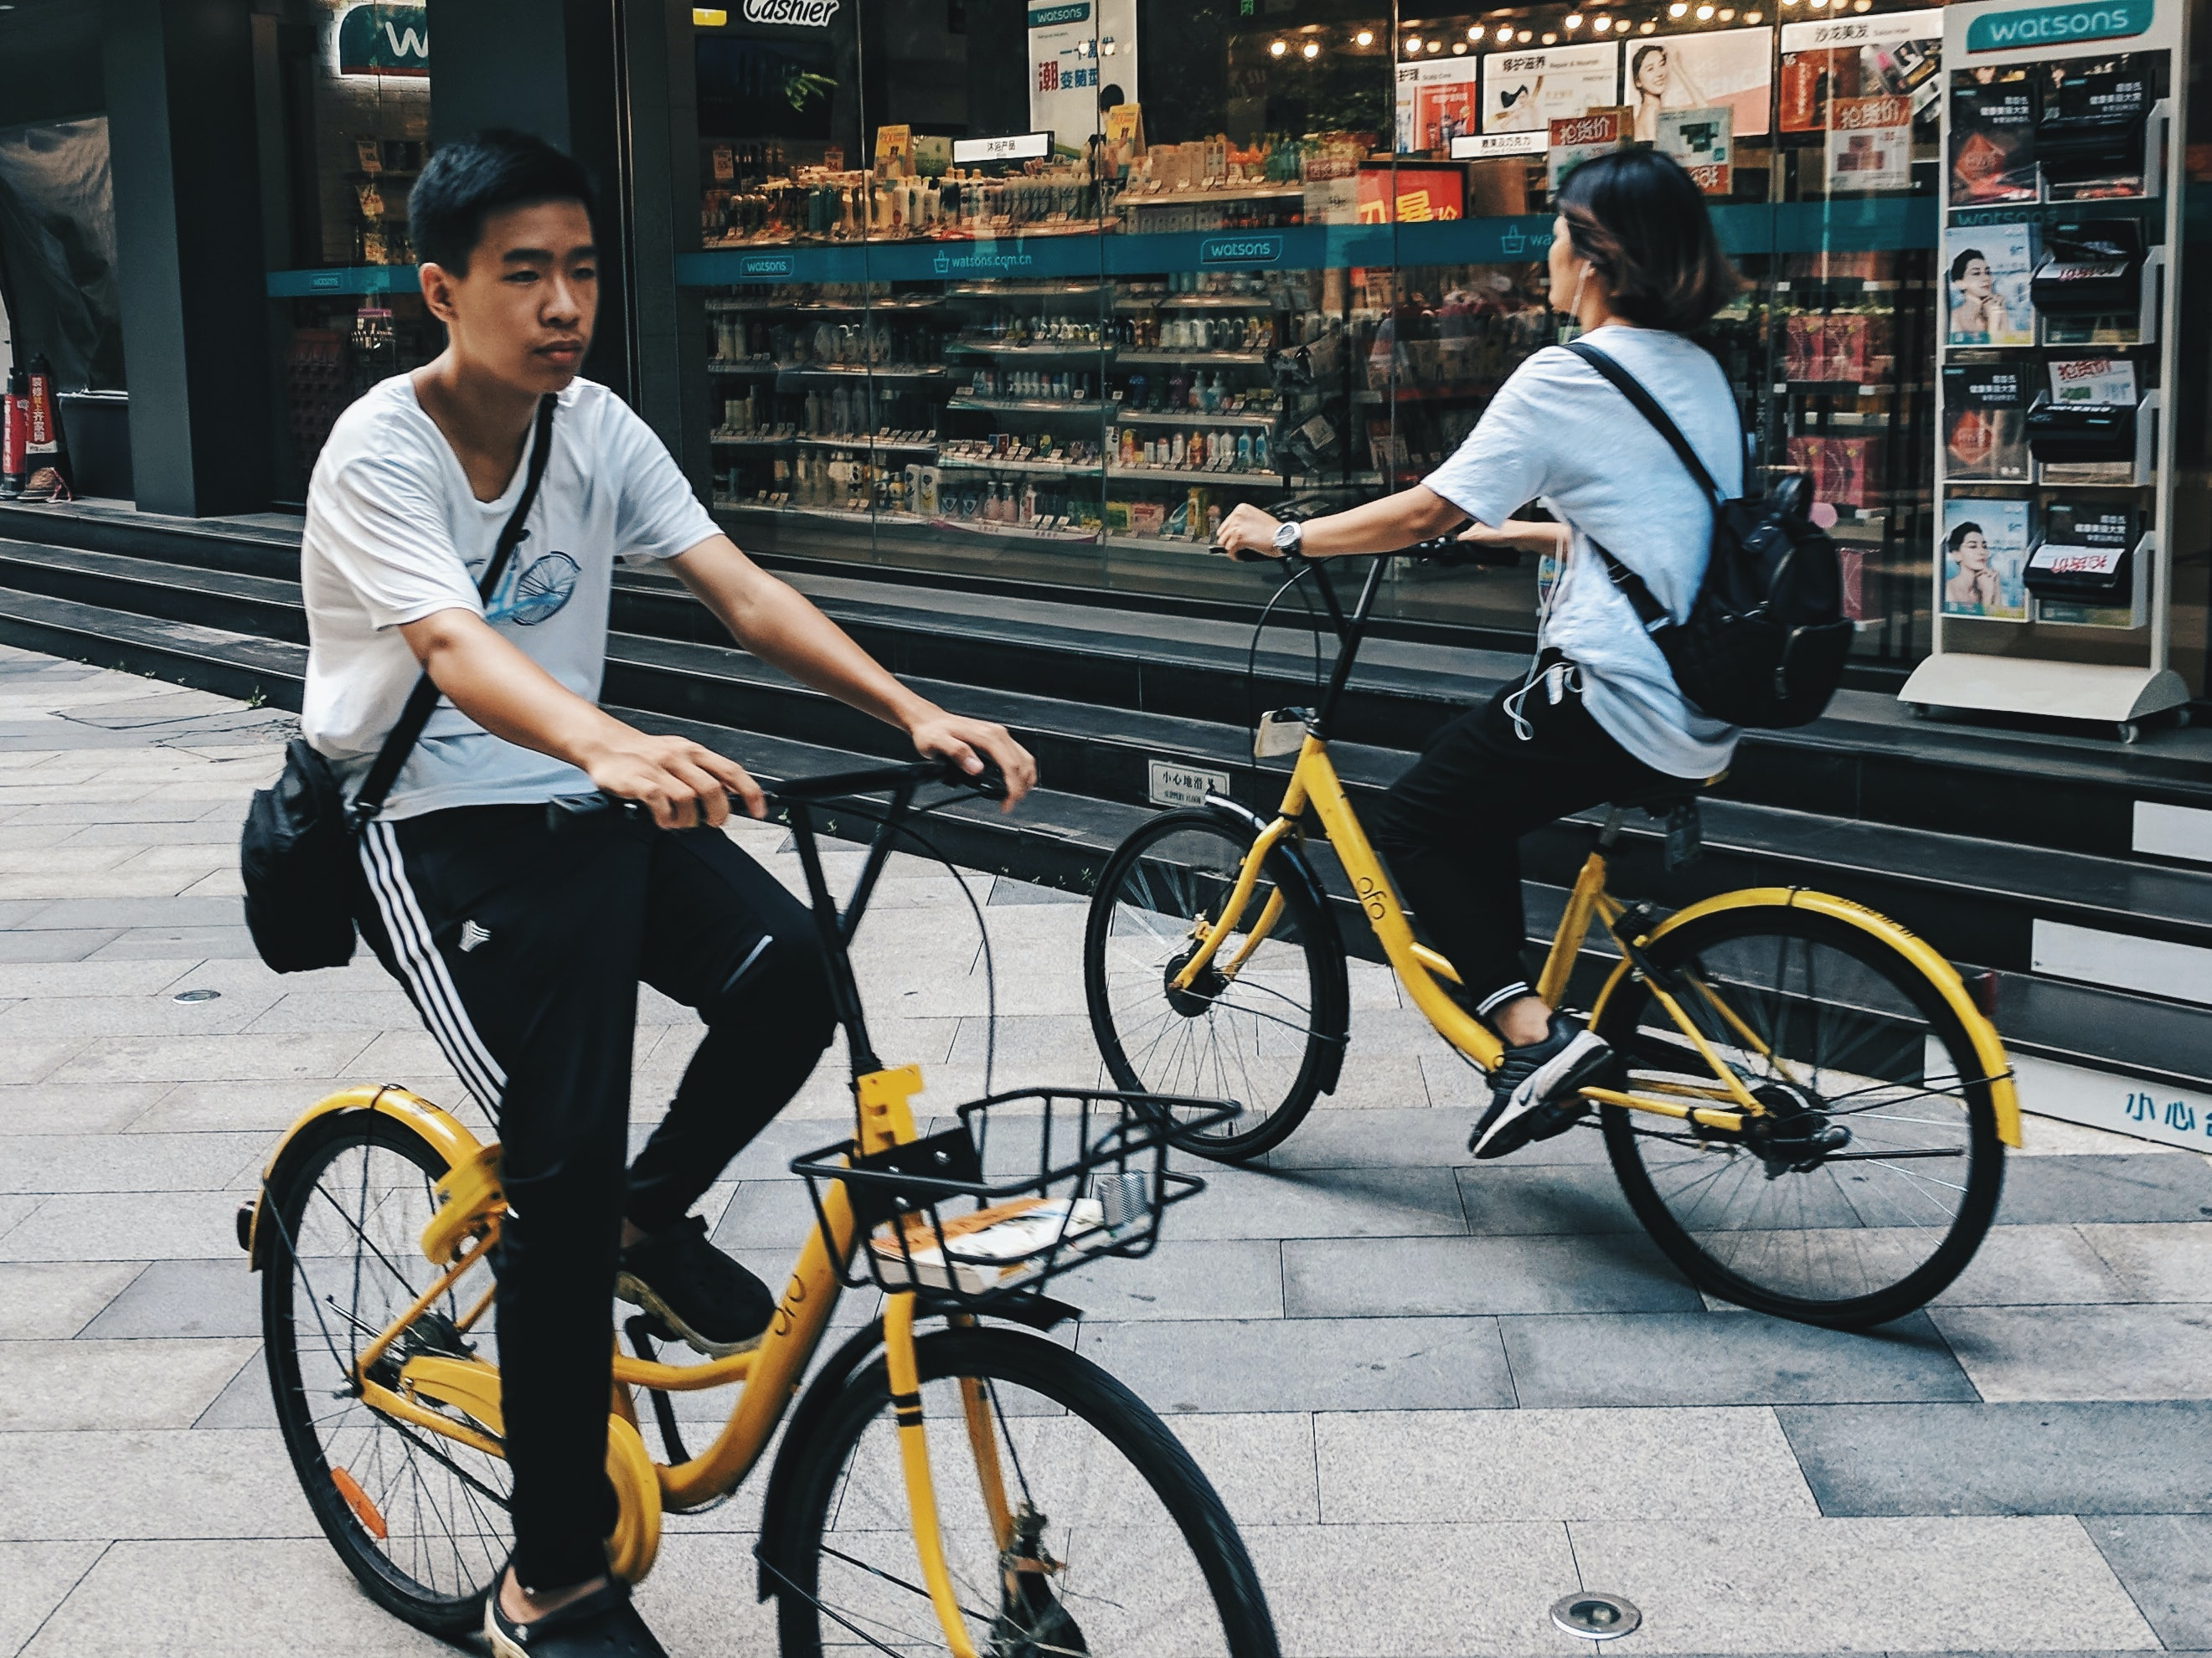 girl and boy riding yellow cruiser bikes beside store during daytime